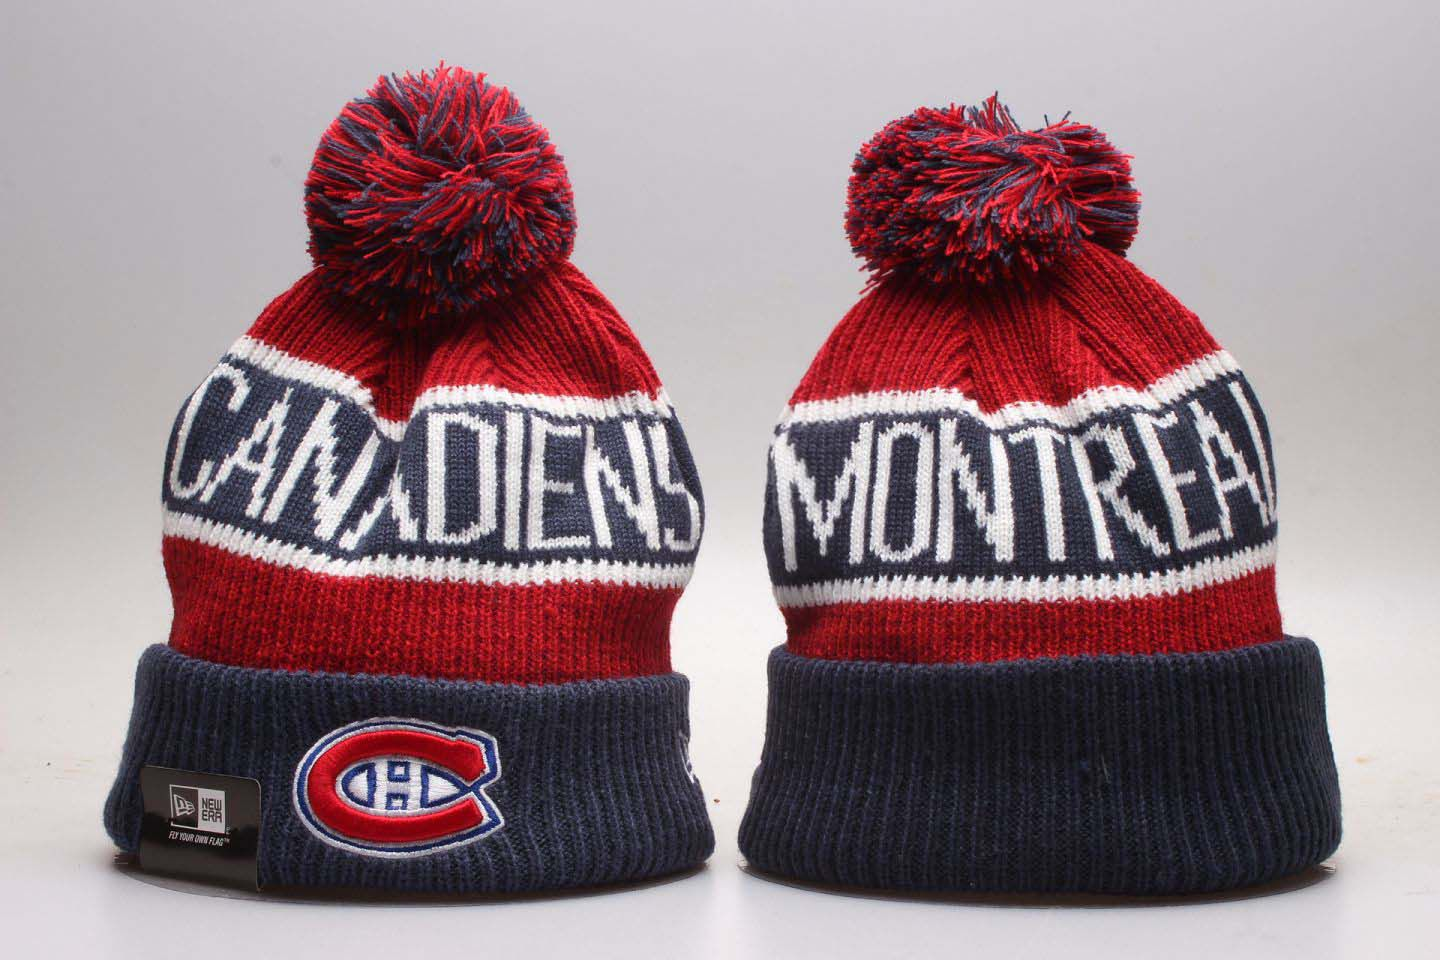 NHL Montreal Canadiens Beanie hot hat1